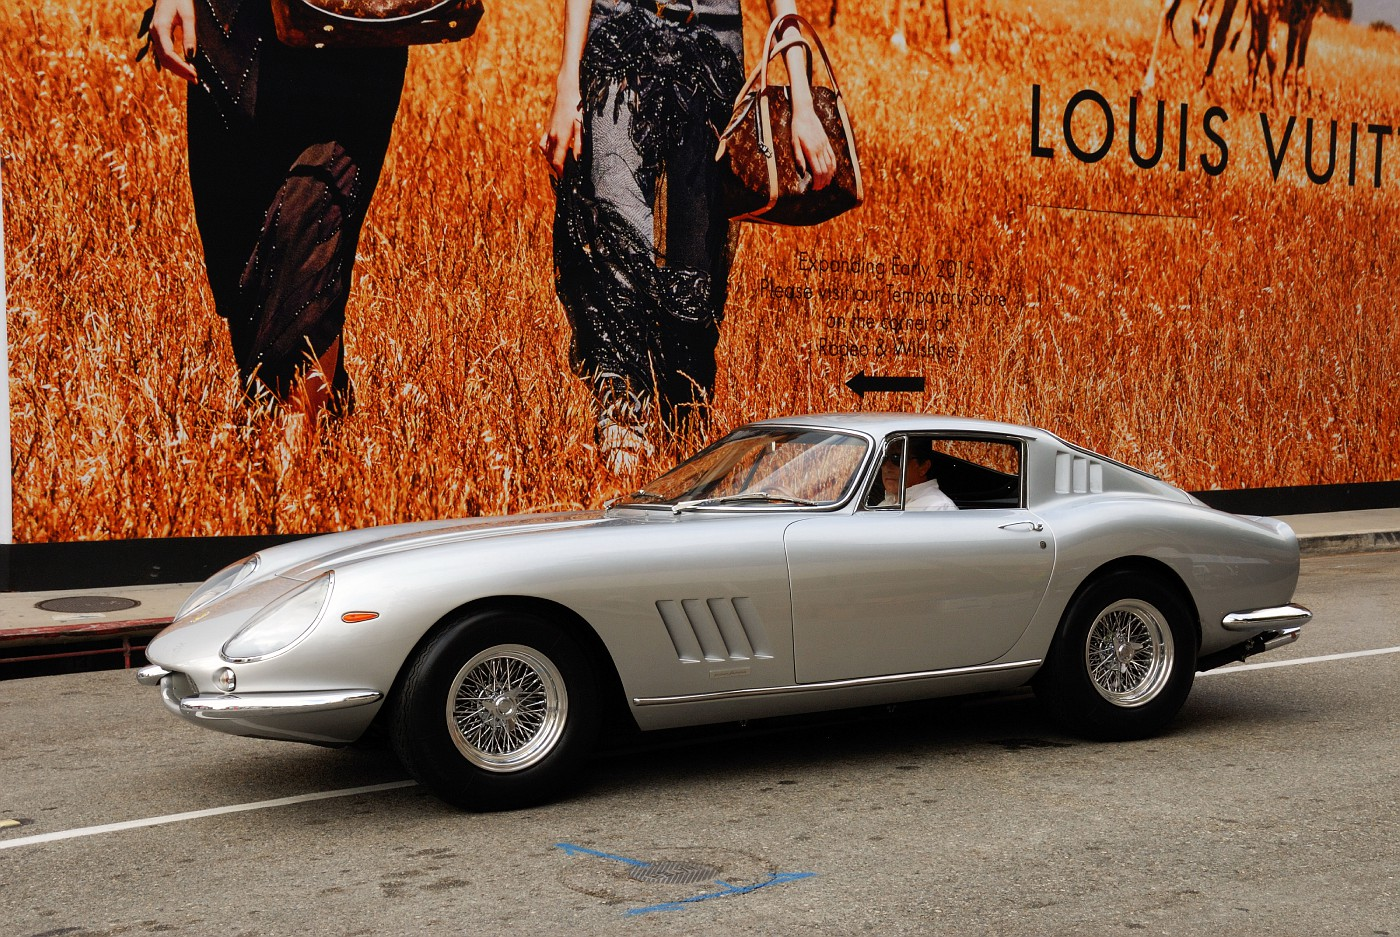 Photo 1967 Ferrari 275gtb 4 Owned By Rick Principe 2014 Rodeo Drive Edited Images Album Automotivetraveler Fotki Com Photo And Video Sharing Made Easy